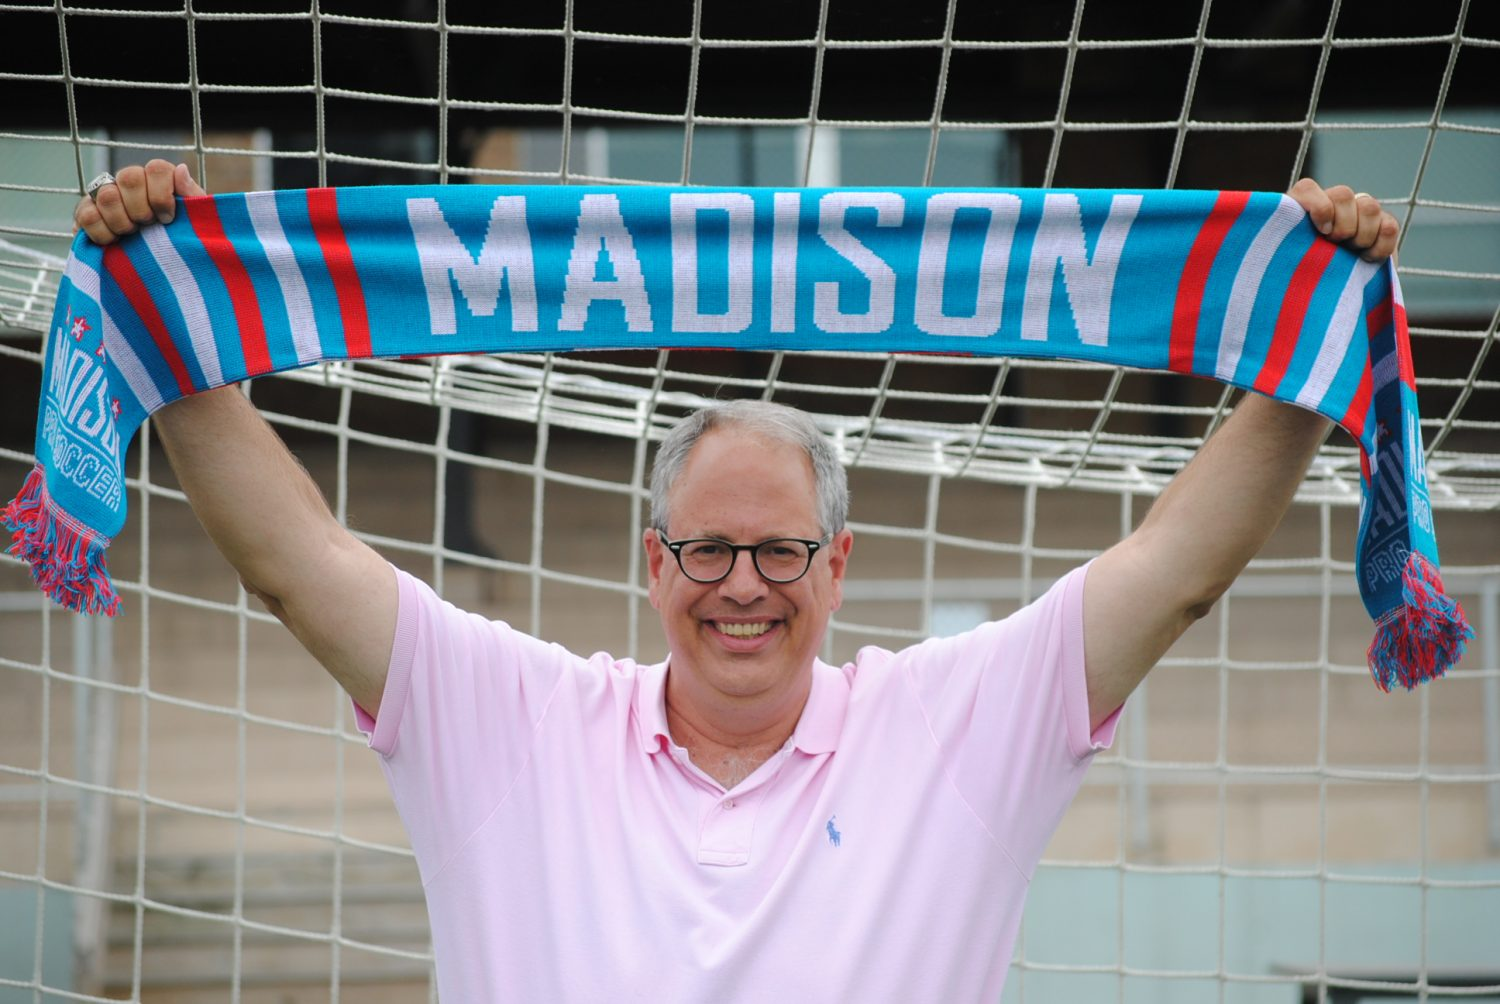 Peter Wilt, professional soccer team executive, on branding, communities, and more